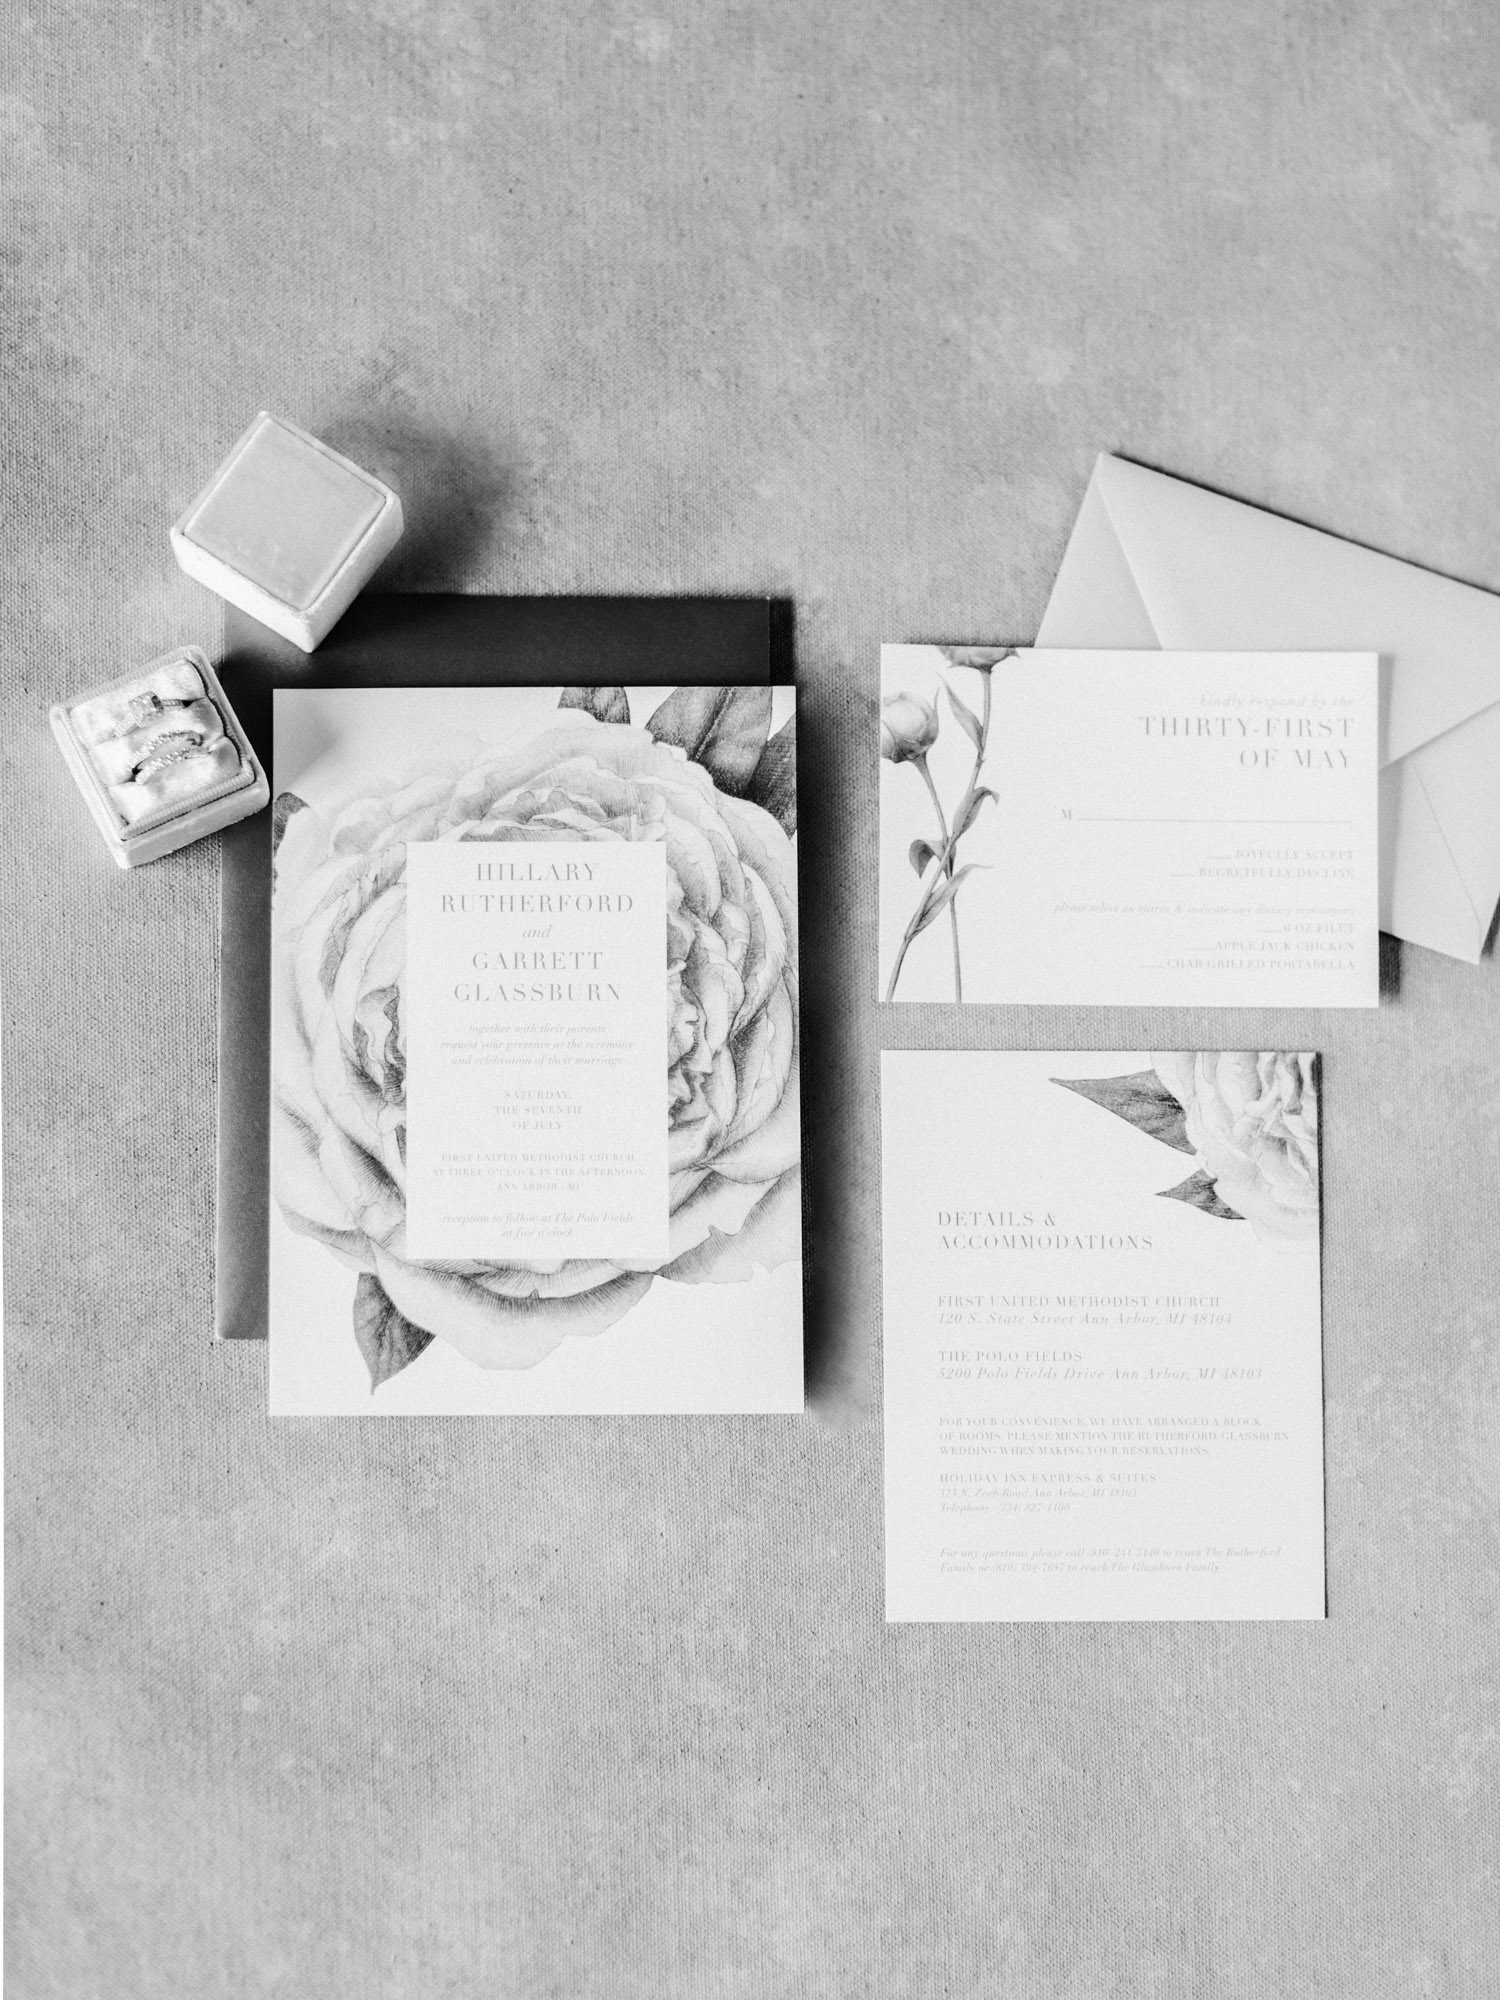 A floral wedding invitation suite rests on a painterly background in Ann Arbor, Michigan